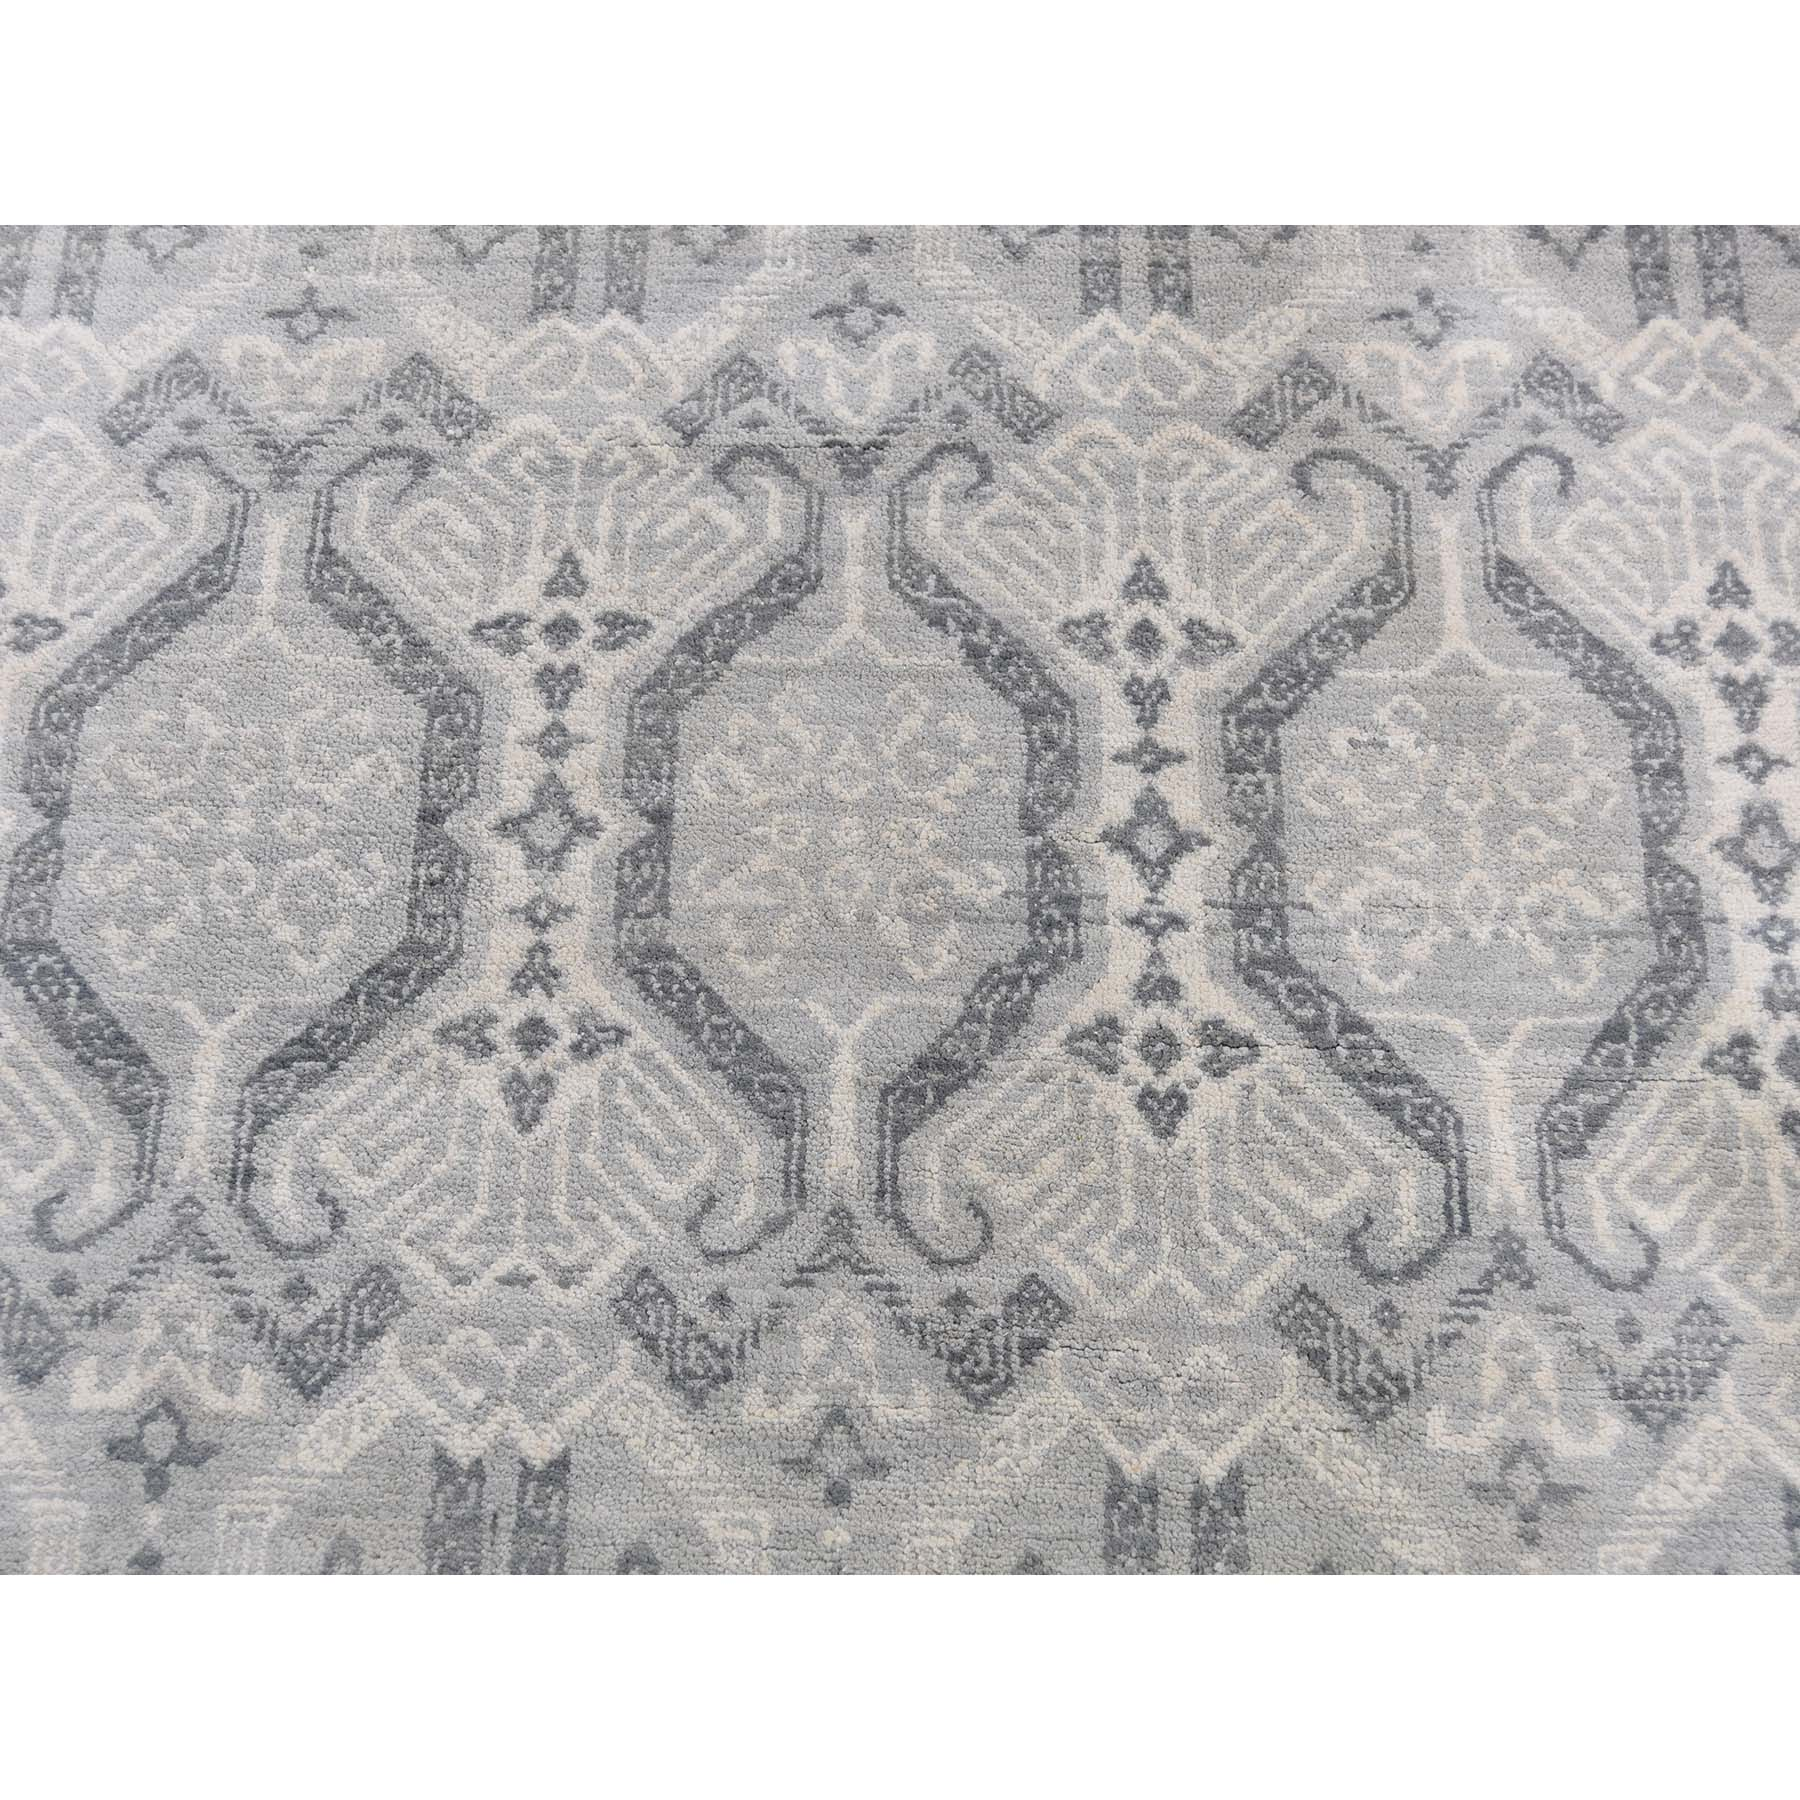 8-1 x9-3  Ikat Silver Wash Tribal Design Pure Wool Hand-Knotted Oriental Rug